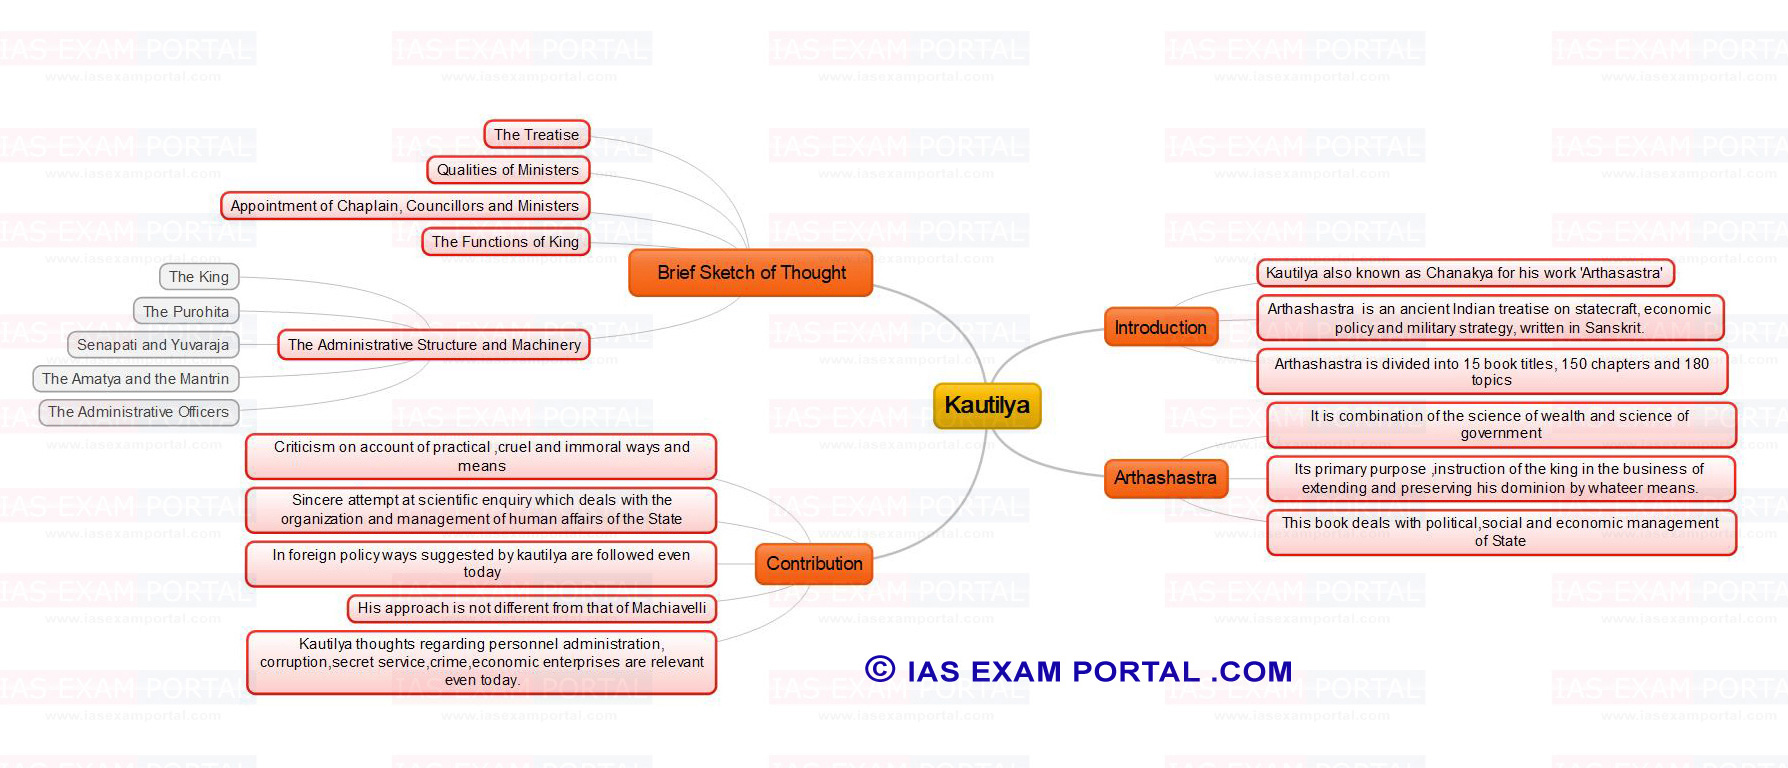 https://iasexamportal.com/sites/default/files/mind-map-for-upsc-public-administration-kautilya.jpg